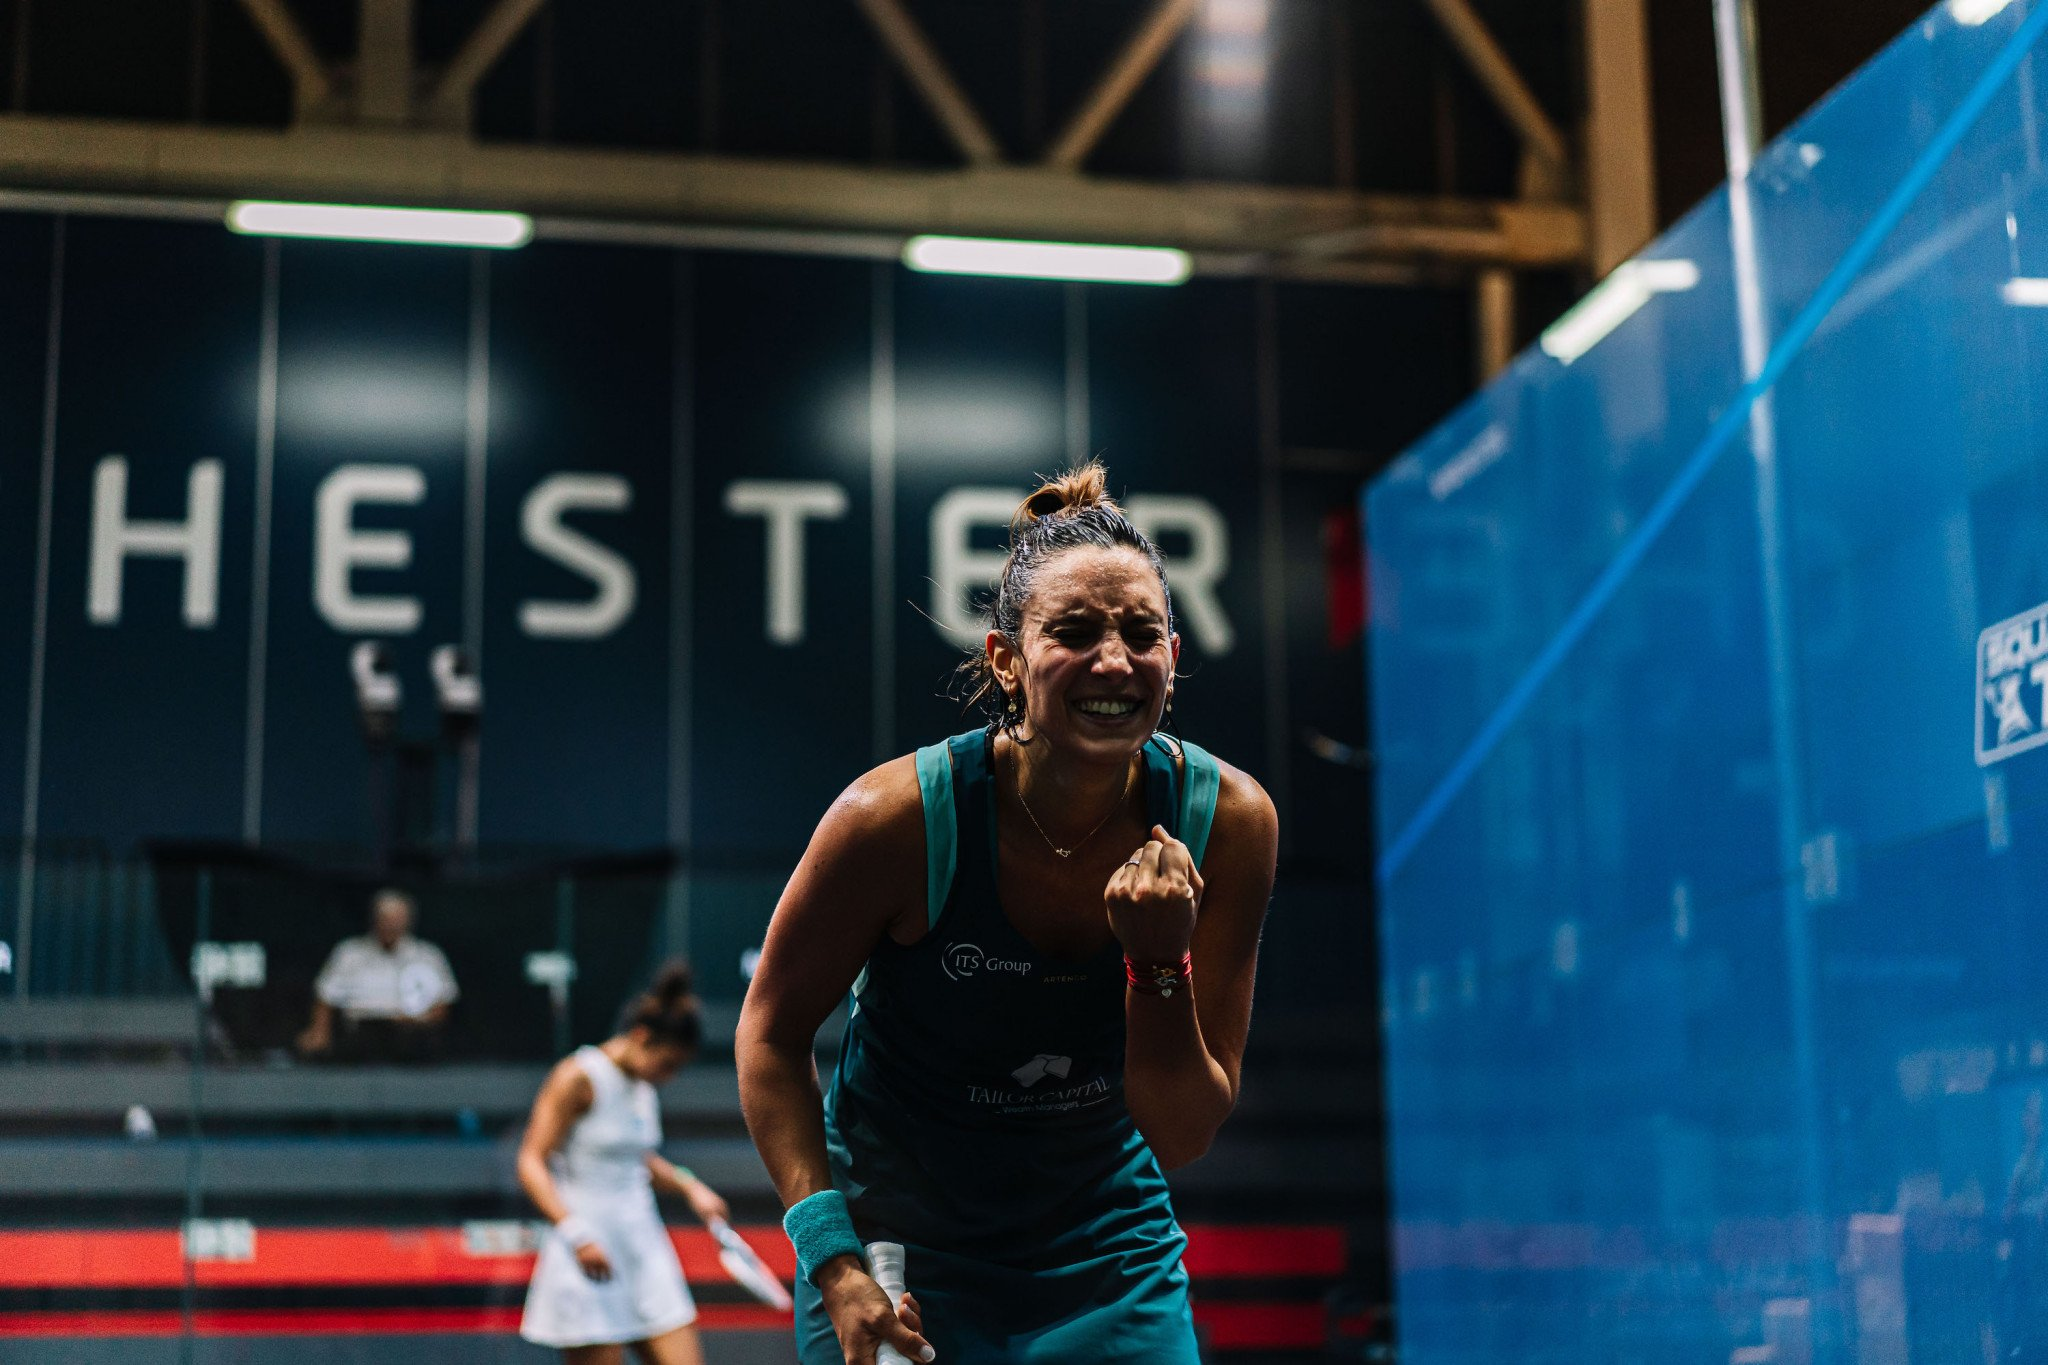 Top seeds Serme and ElShorbagy win five-game Manchester Open semi-finals